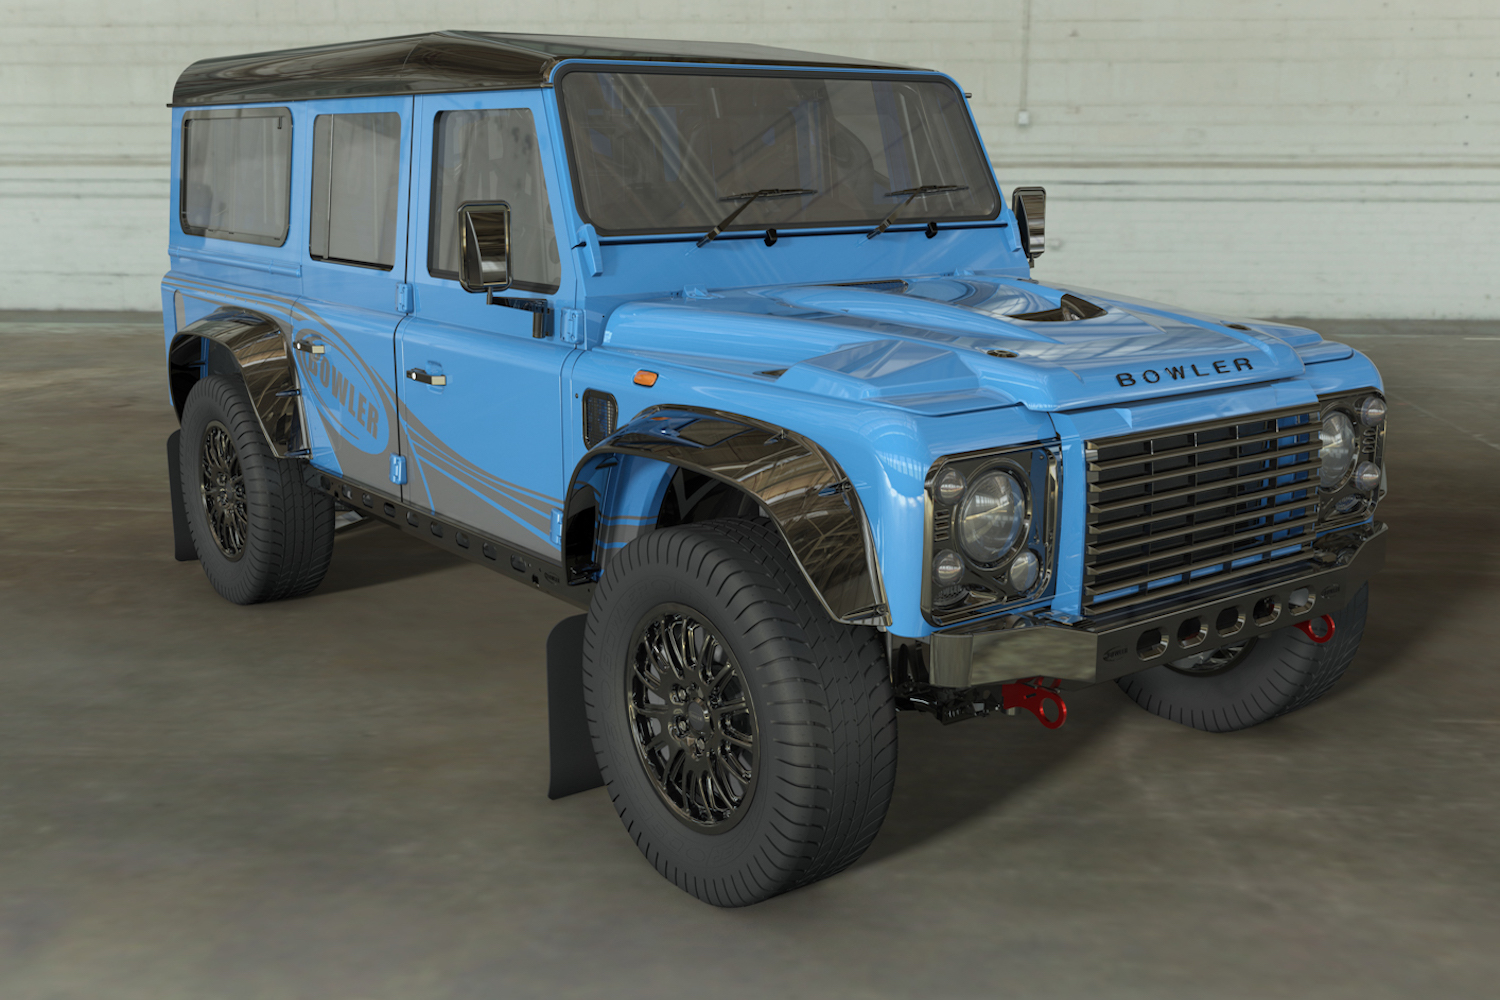 Car News | Land Rover gives permission for Defender recreations | CompleteCar.ie